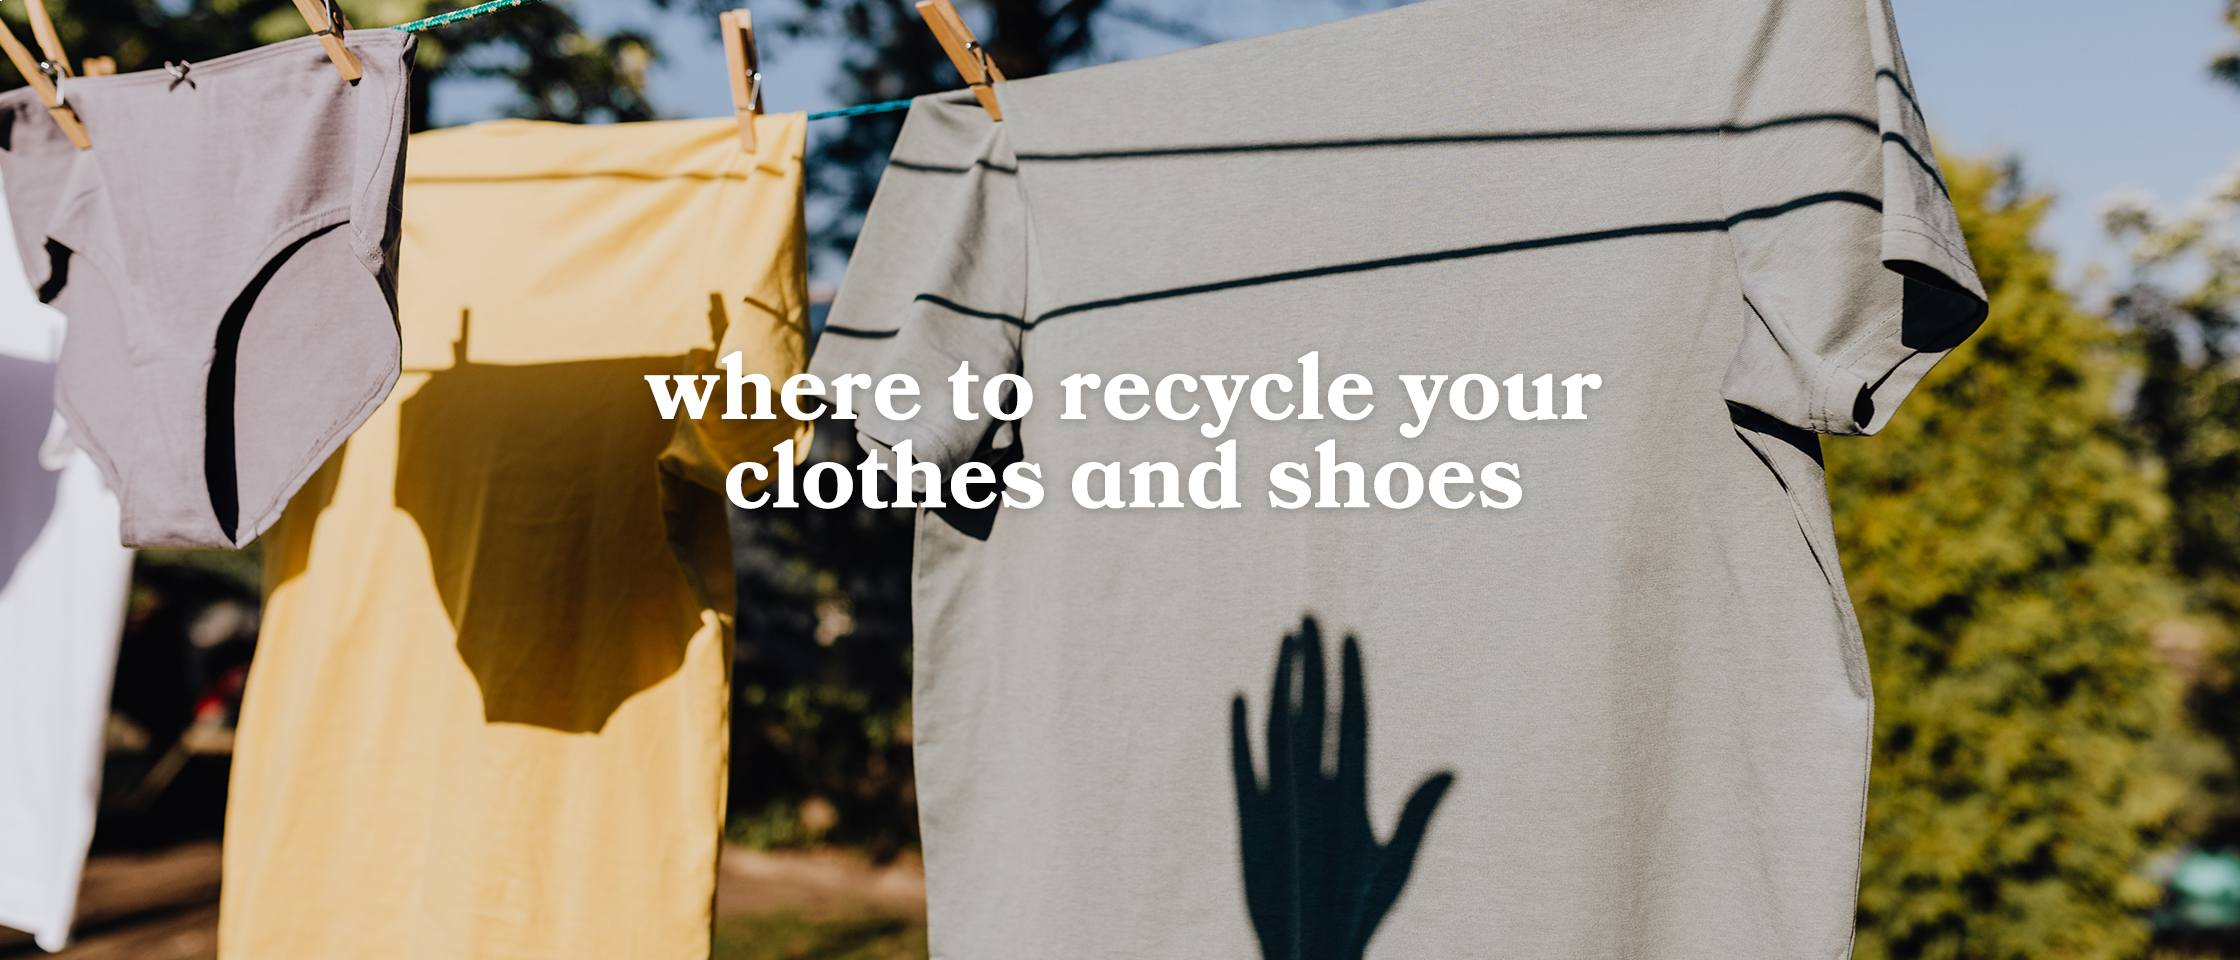 where to recycle your clothes and shoes